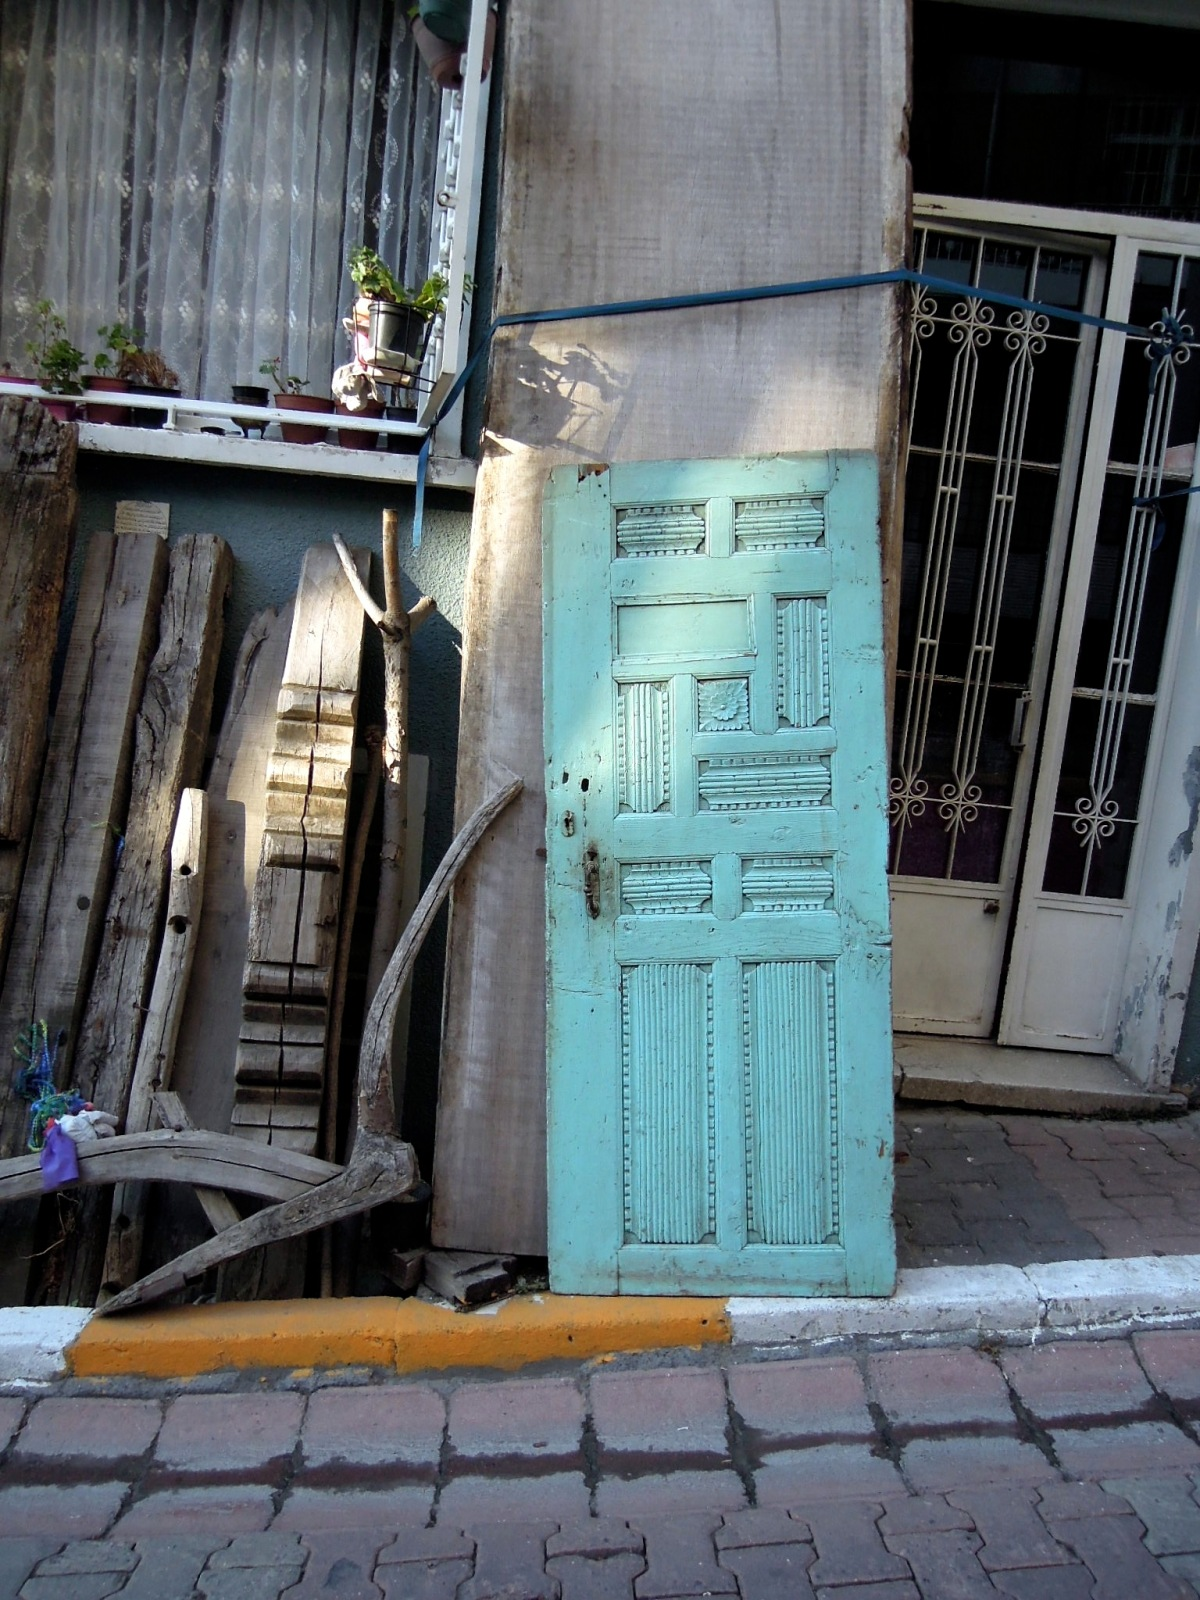 Carved turquoise door propped up against a building wall